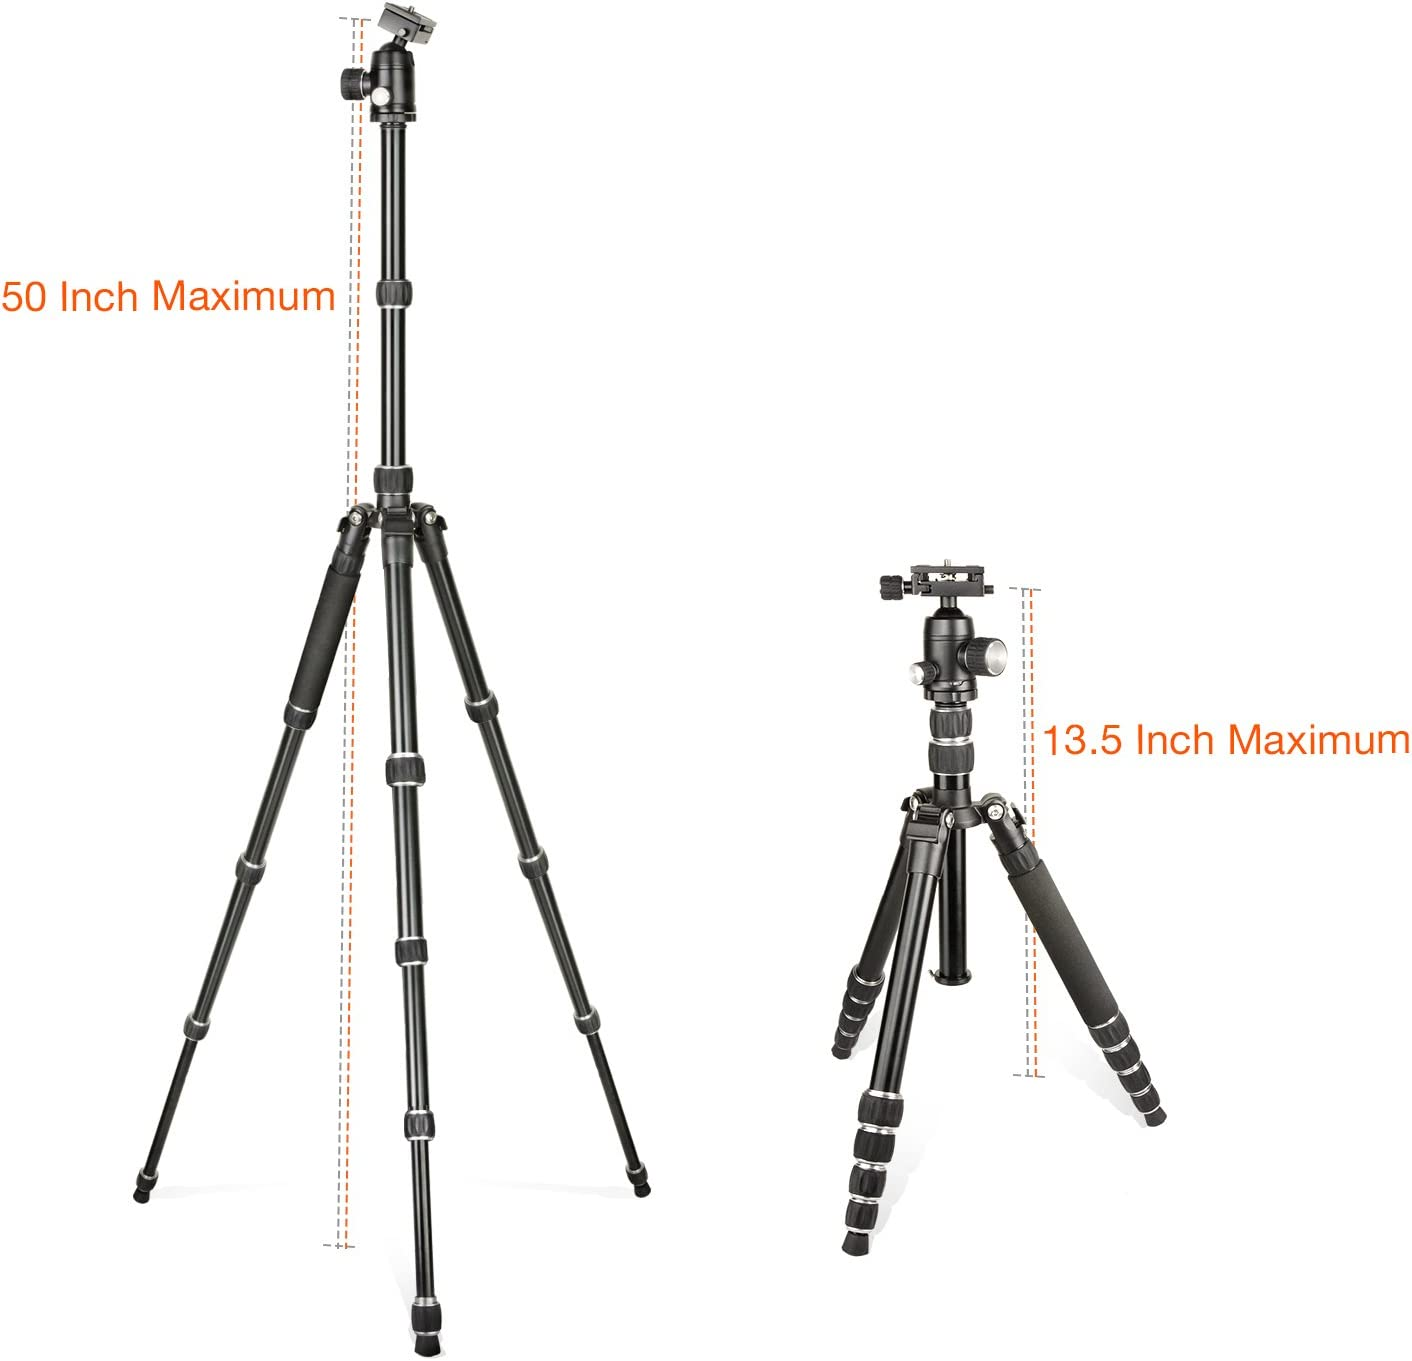 LS Photography Professional 50 Trans-Functional Travel Angle Carbon Fiber Tripod//Monopod Quick Release Plate LGG692 and Panning Scale Foldable and Compact with 360/° Smooth Large Ball Head